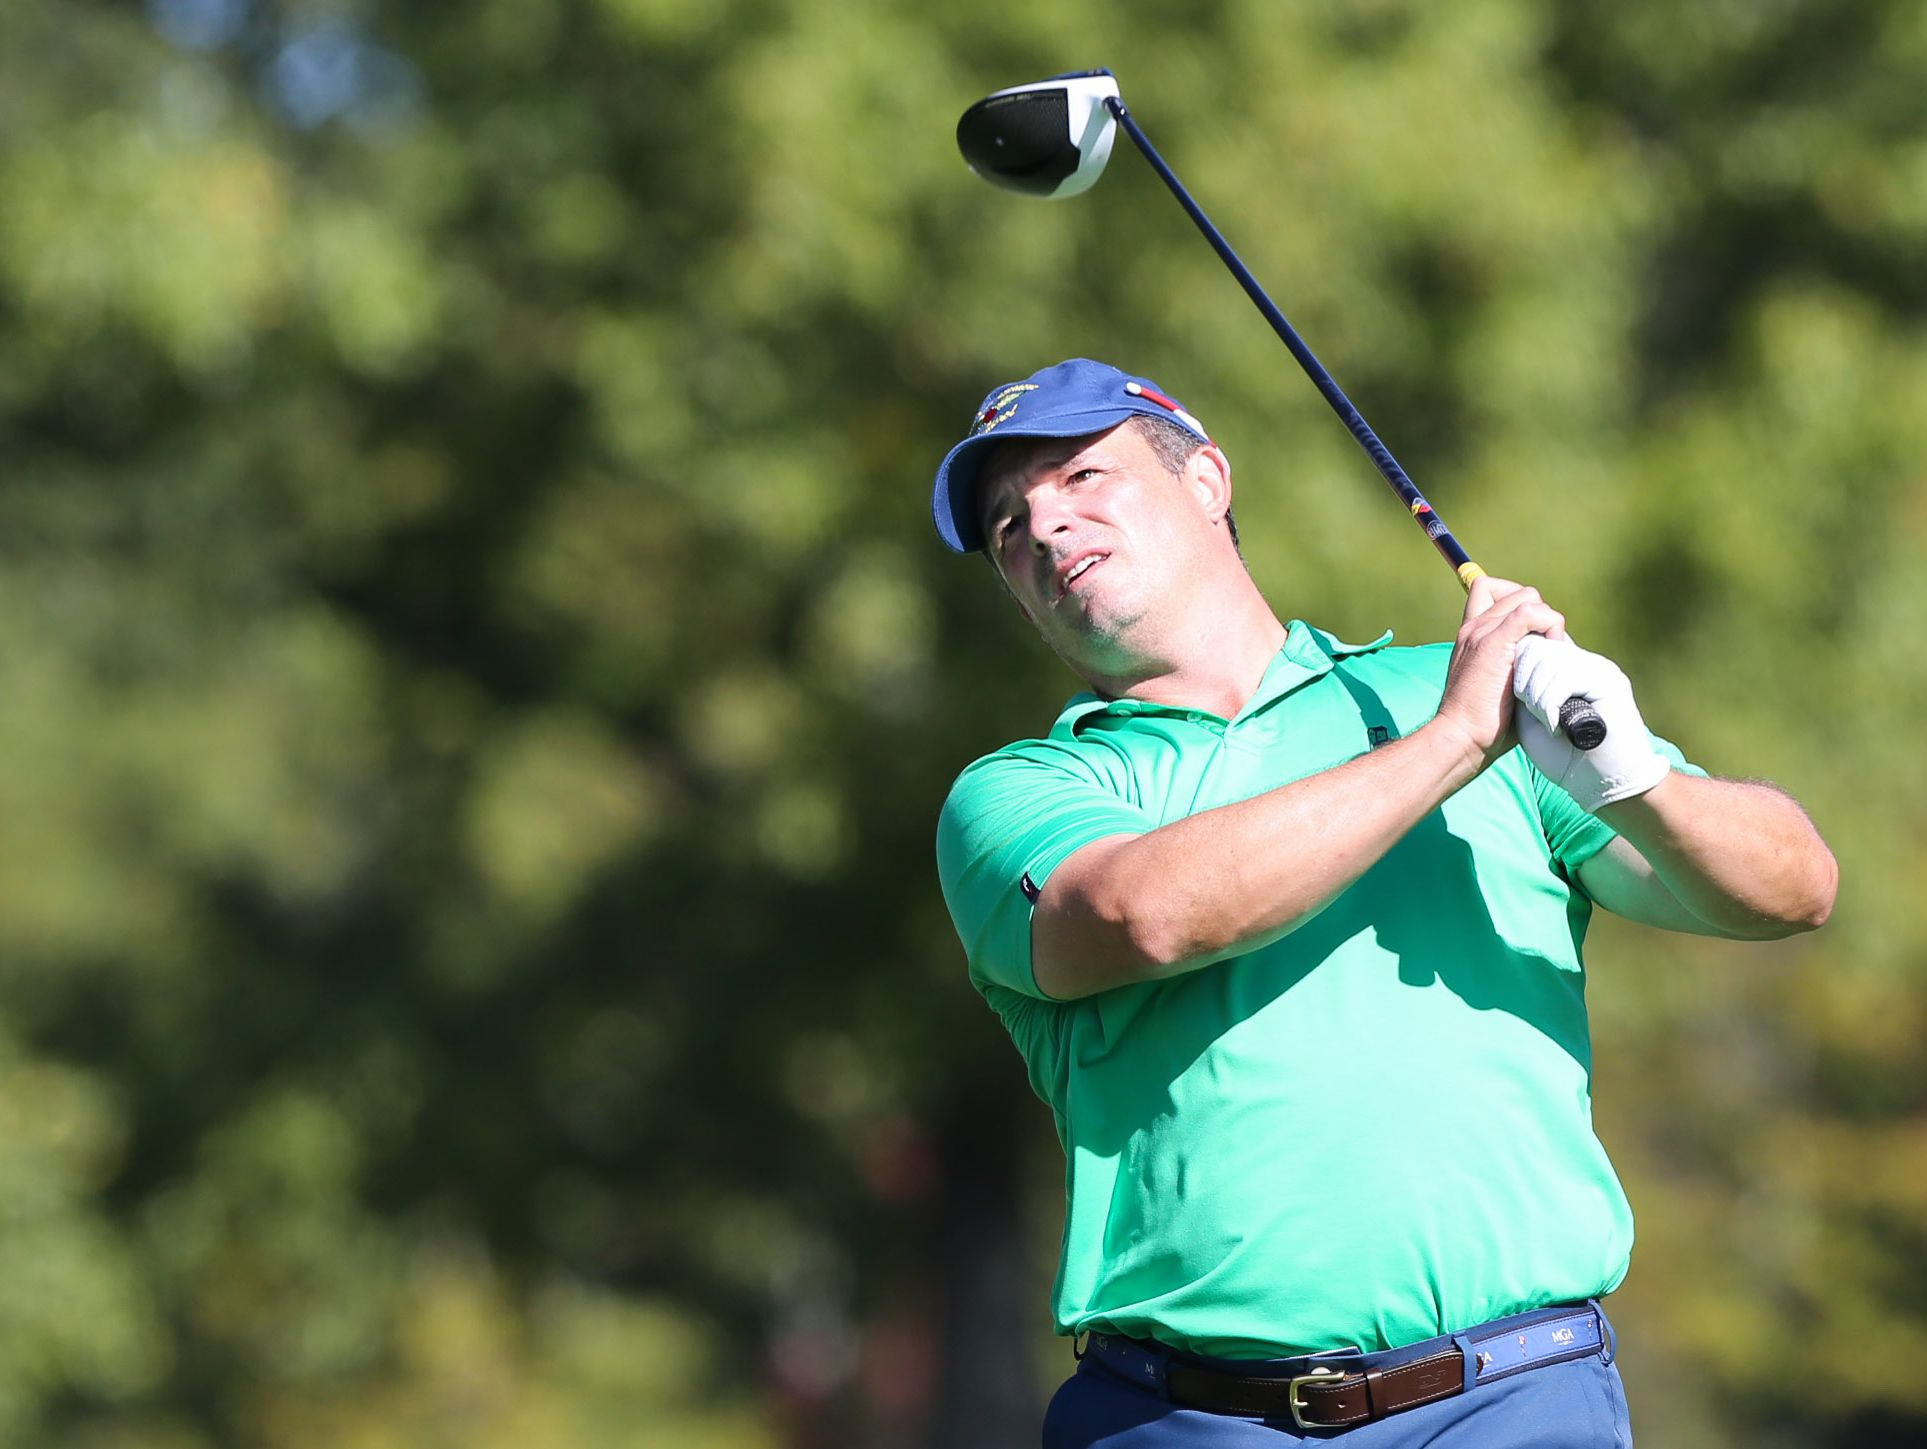 Trevor Randolph of Arcola C.C. in New Jersey got a repeat win at the MGA Mid-Amateur Championship on Thursday at Tamarack C.C.